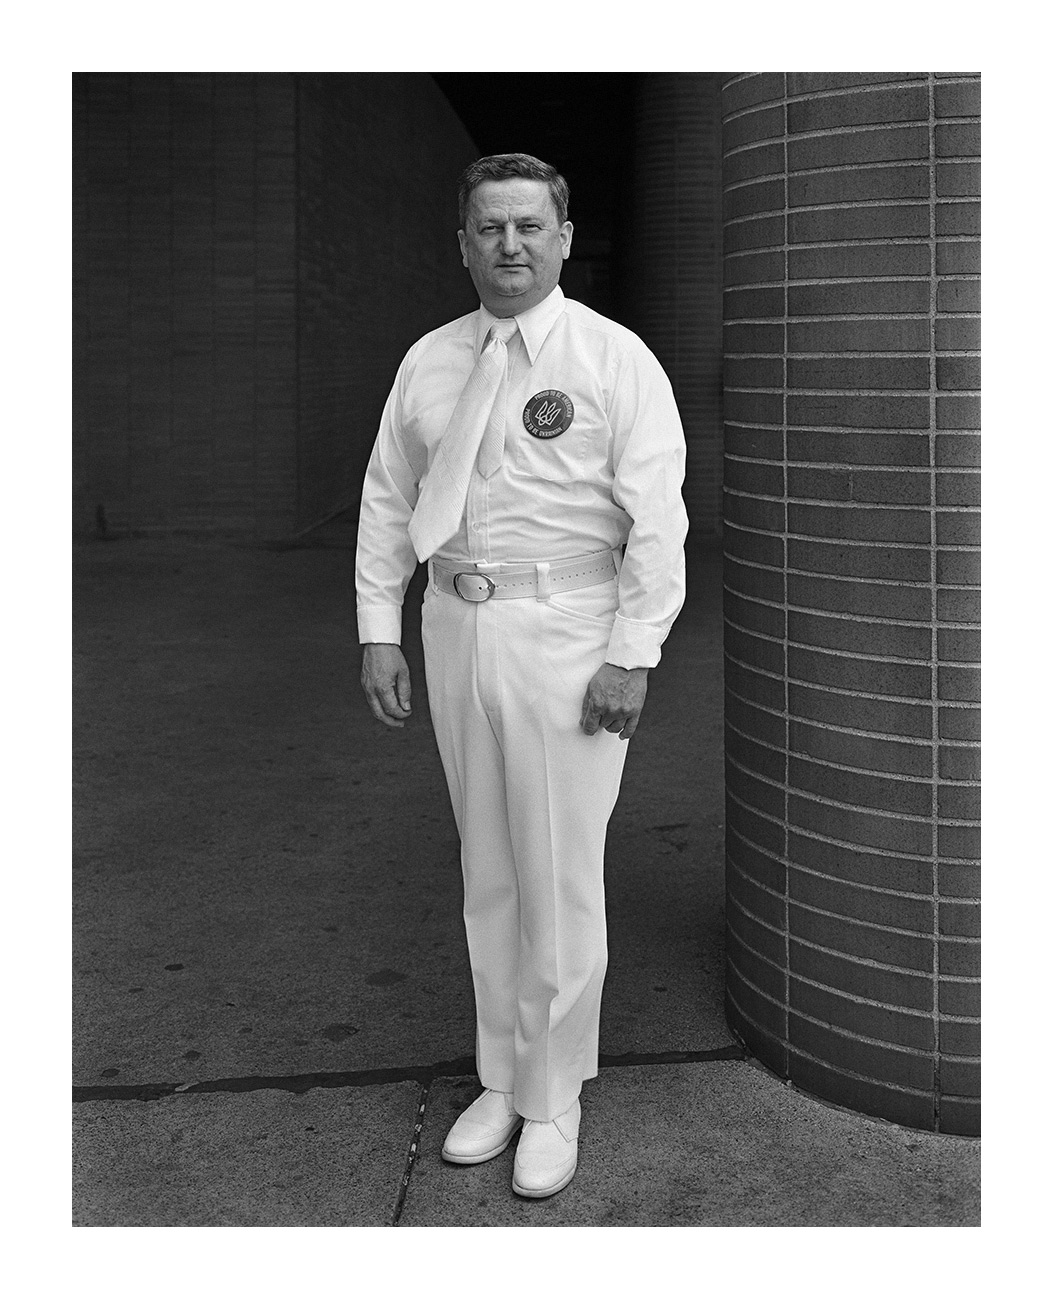 A Man All Dressed in White, Detroit, 5 Aug. 1973